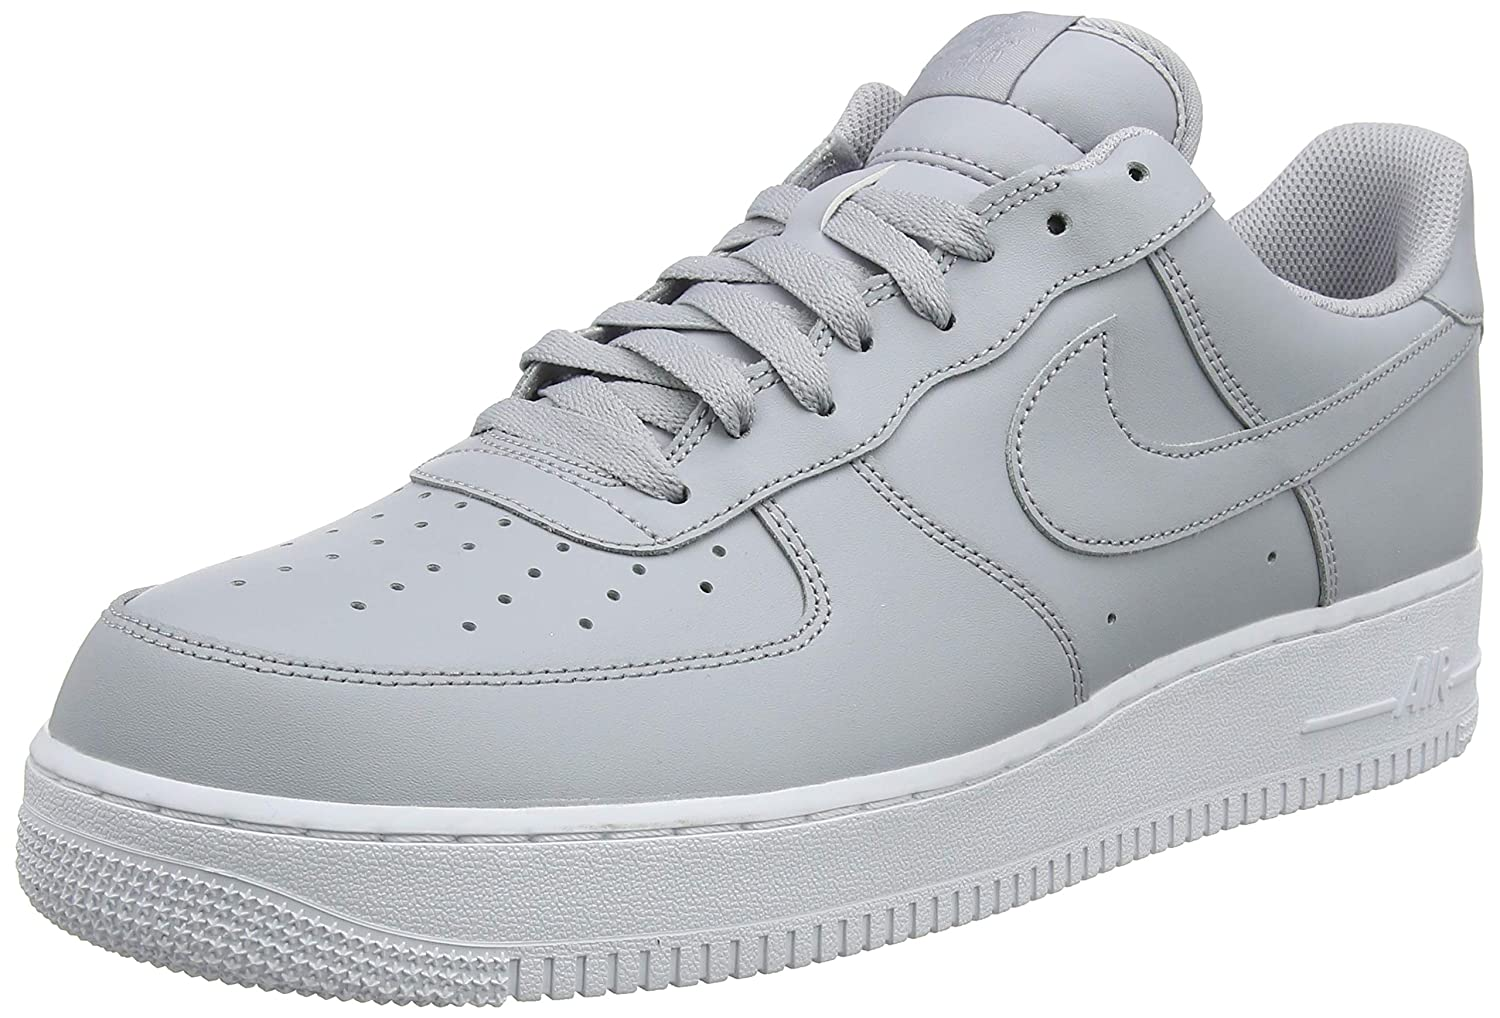 Wolf Grey White Nike - Air Force One